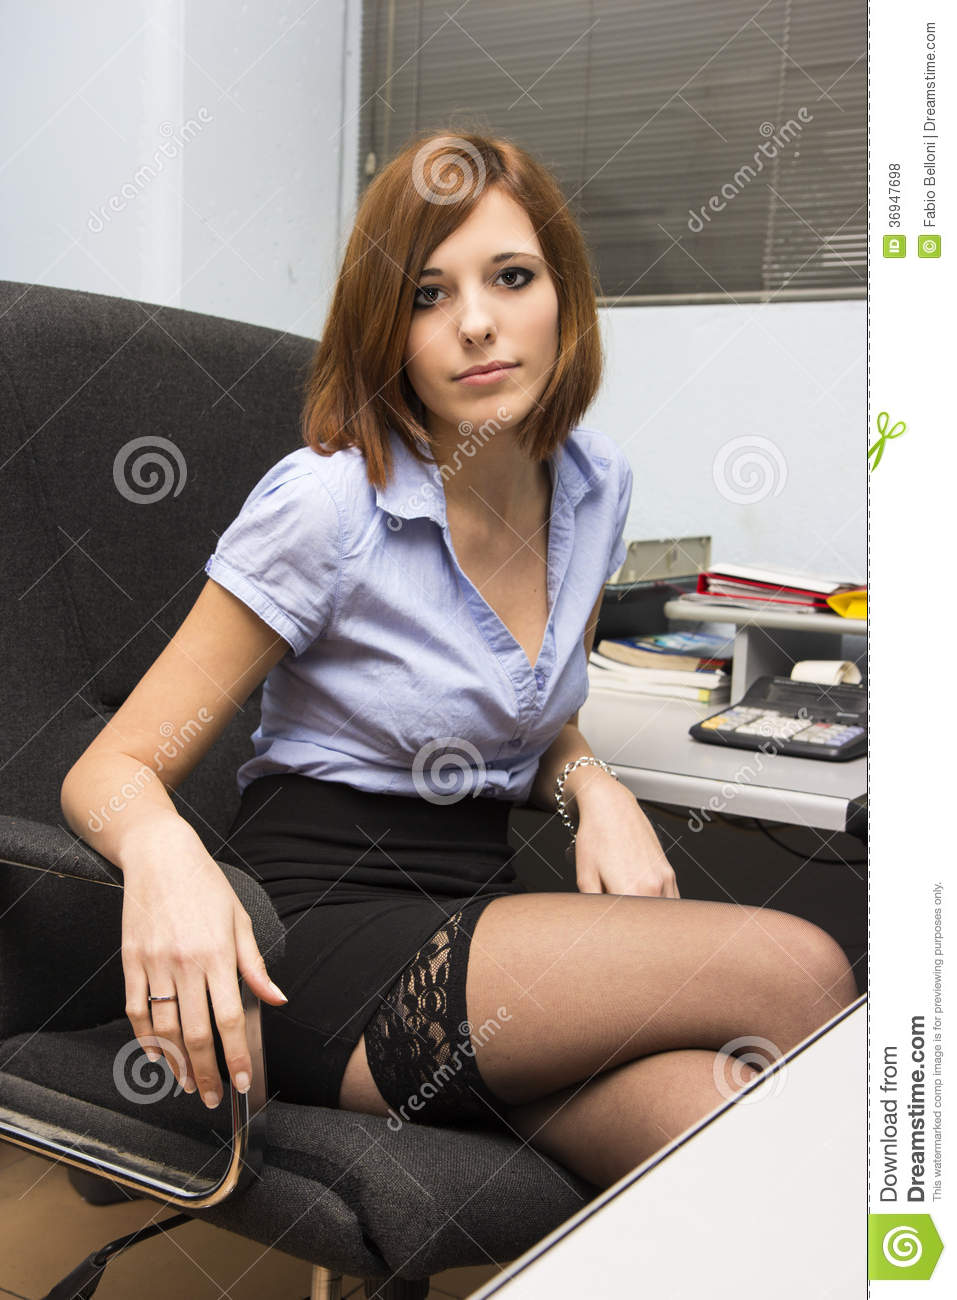 Secretary Stock Photo Image Of Corporation, Face, Black - 36947698-7335